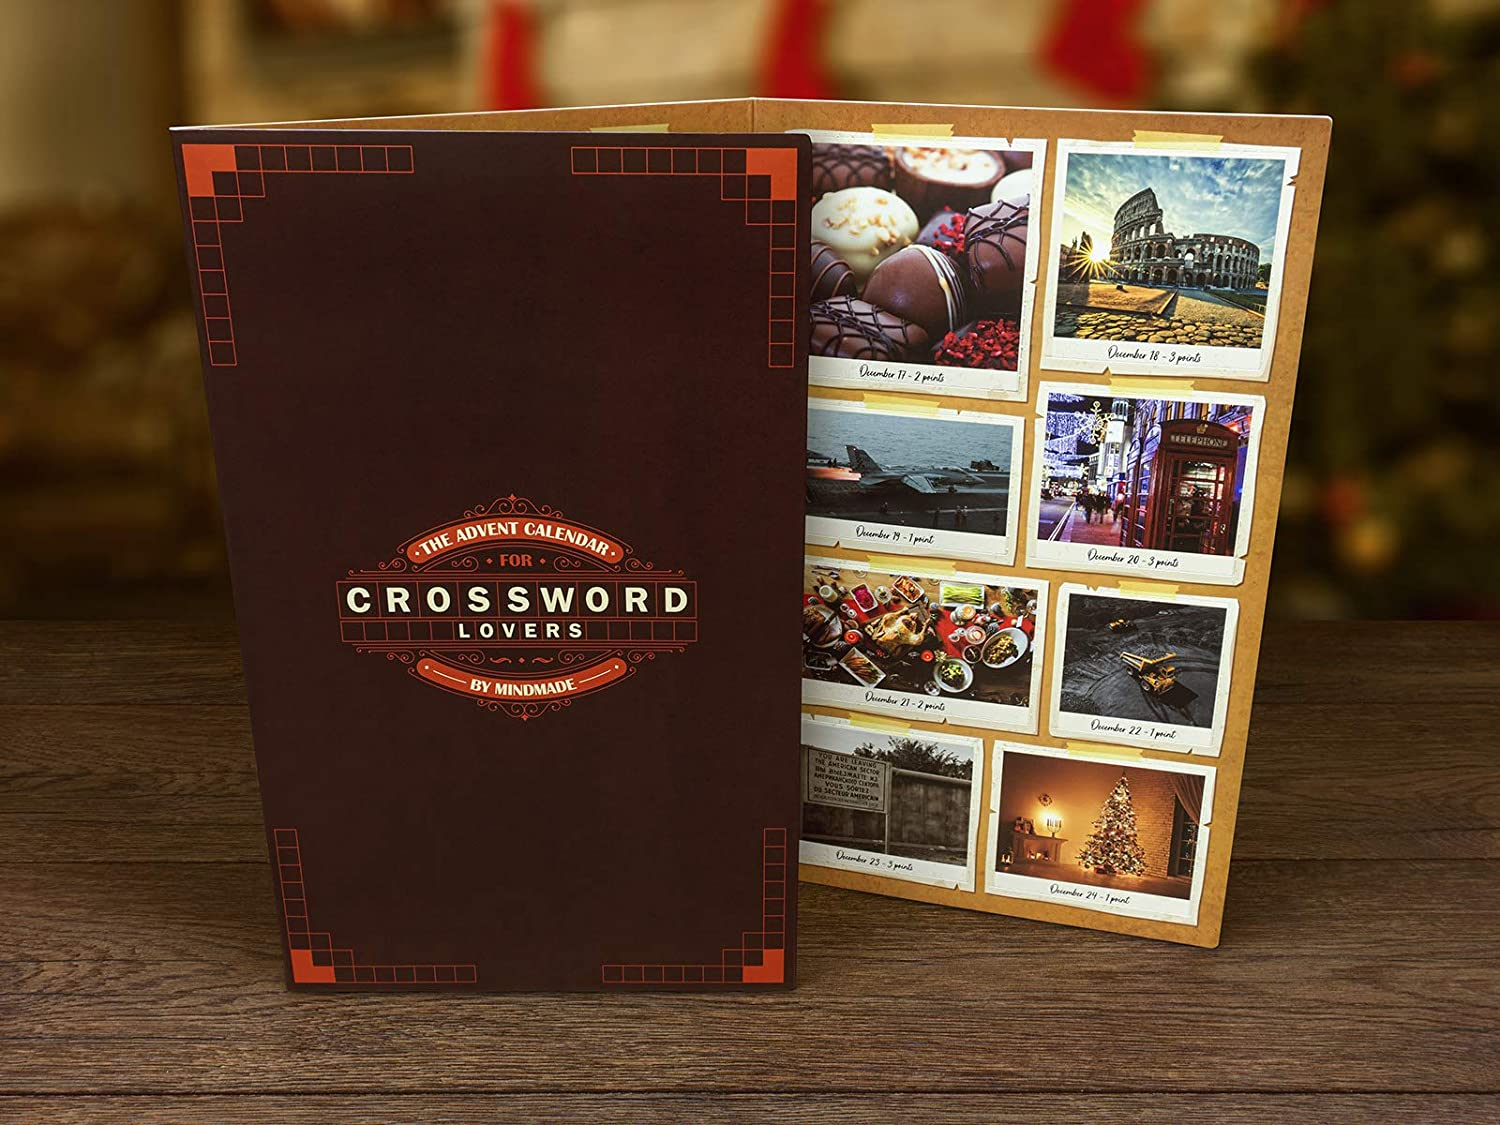 The Advent Calendar for Crossword Lovers by Mindmade